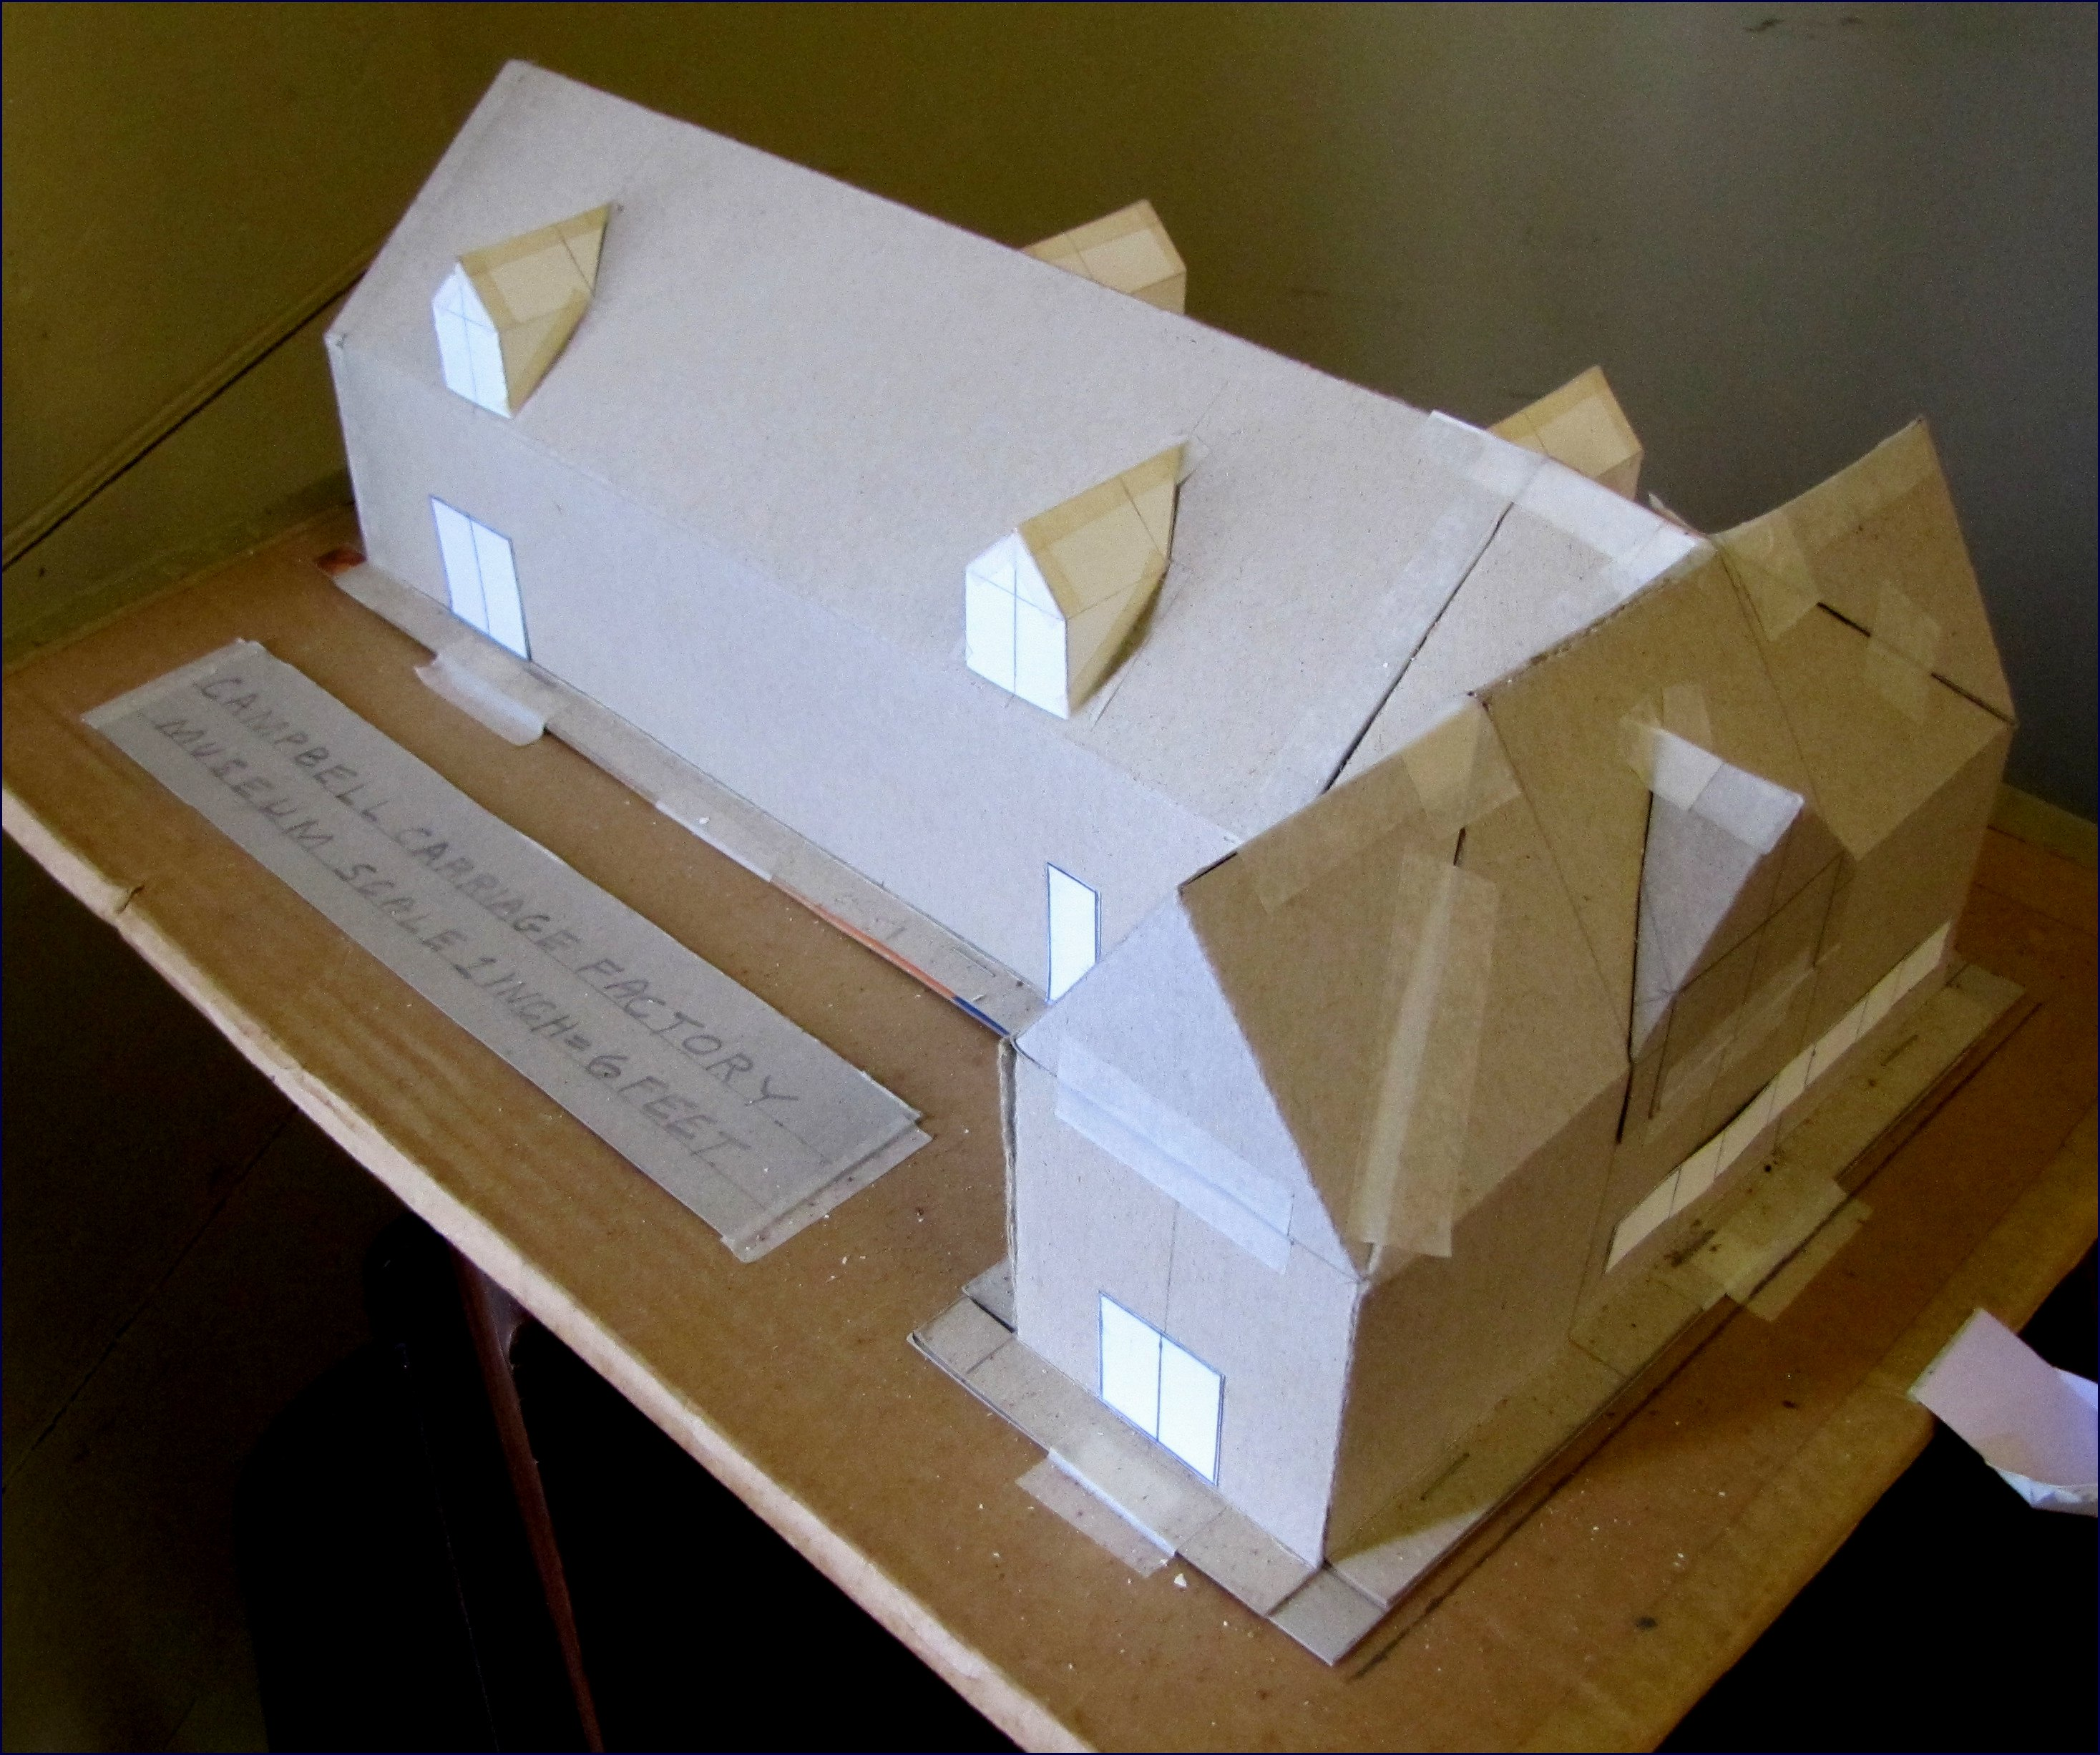 A scale model for the addition, made by Daniel